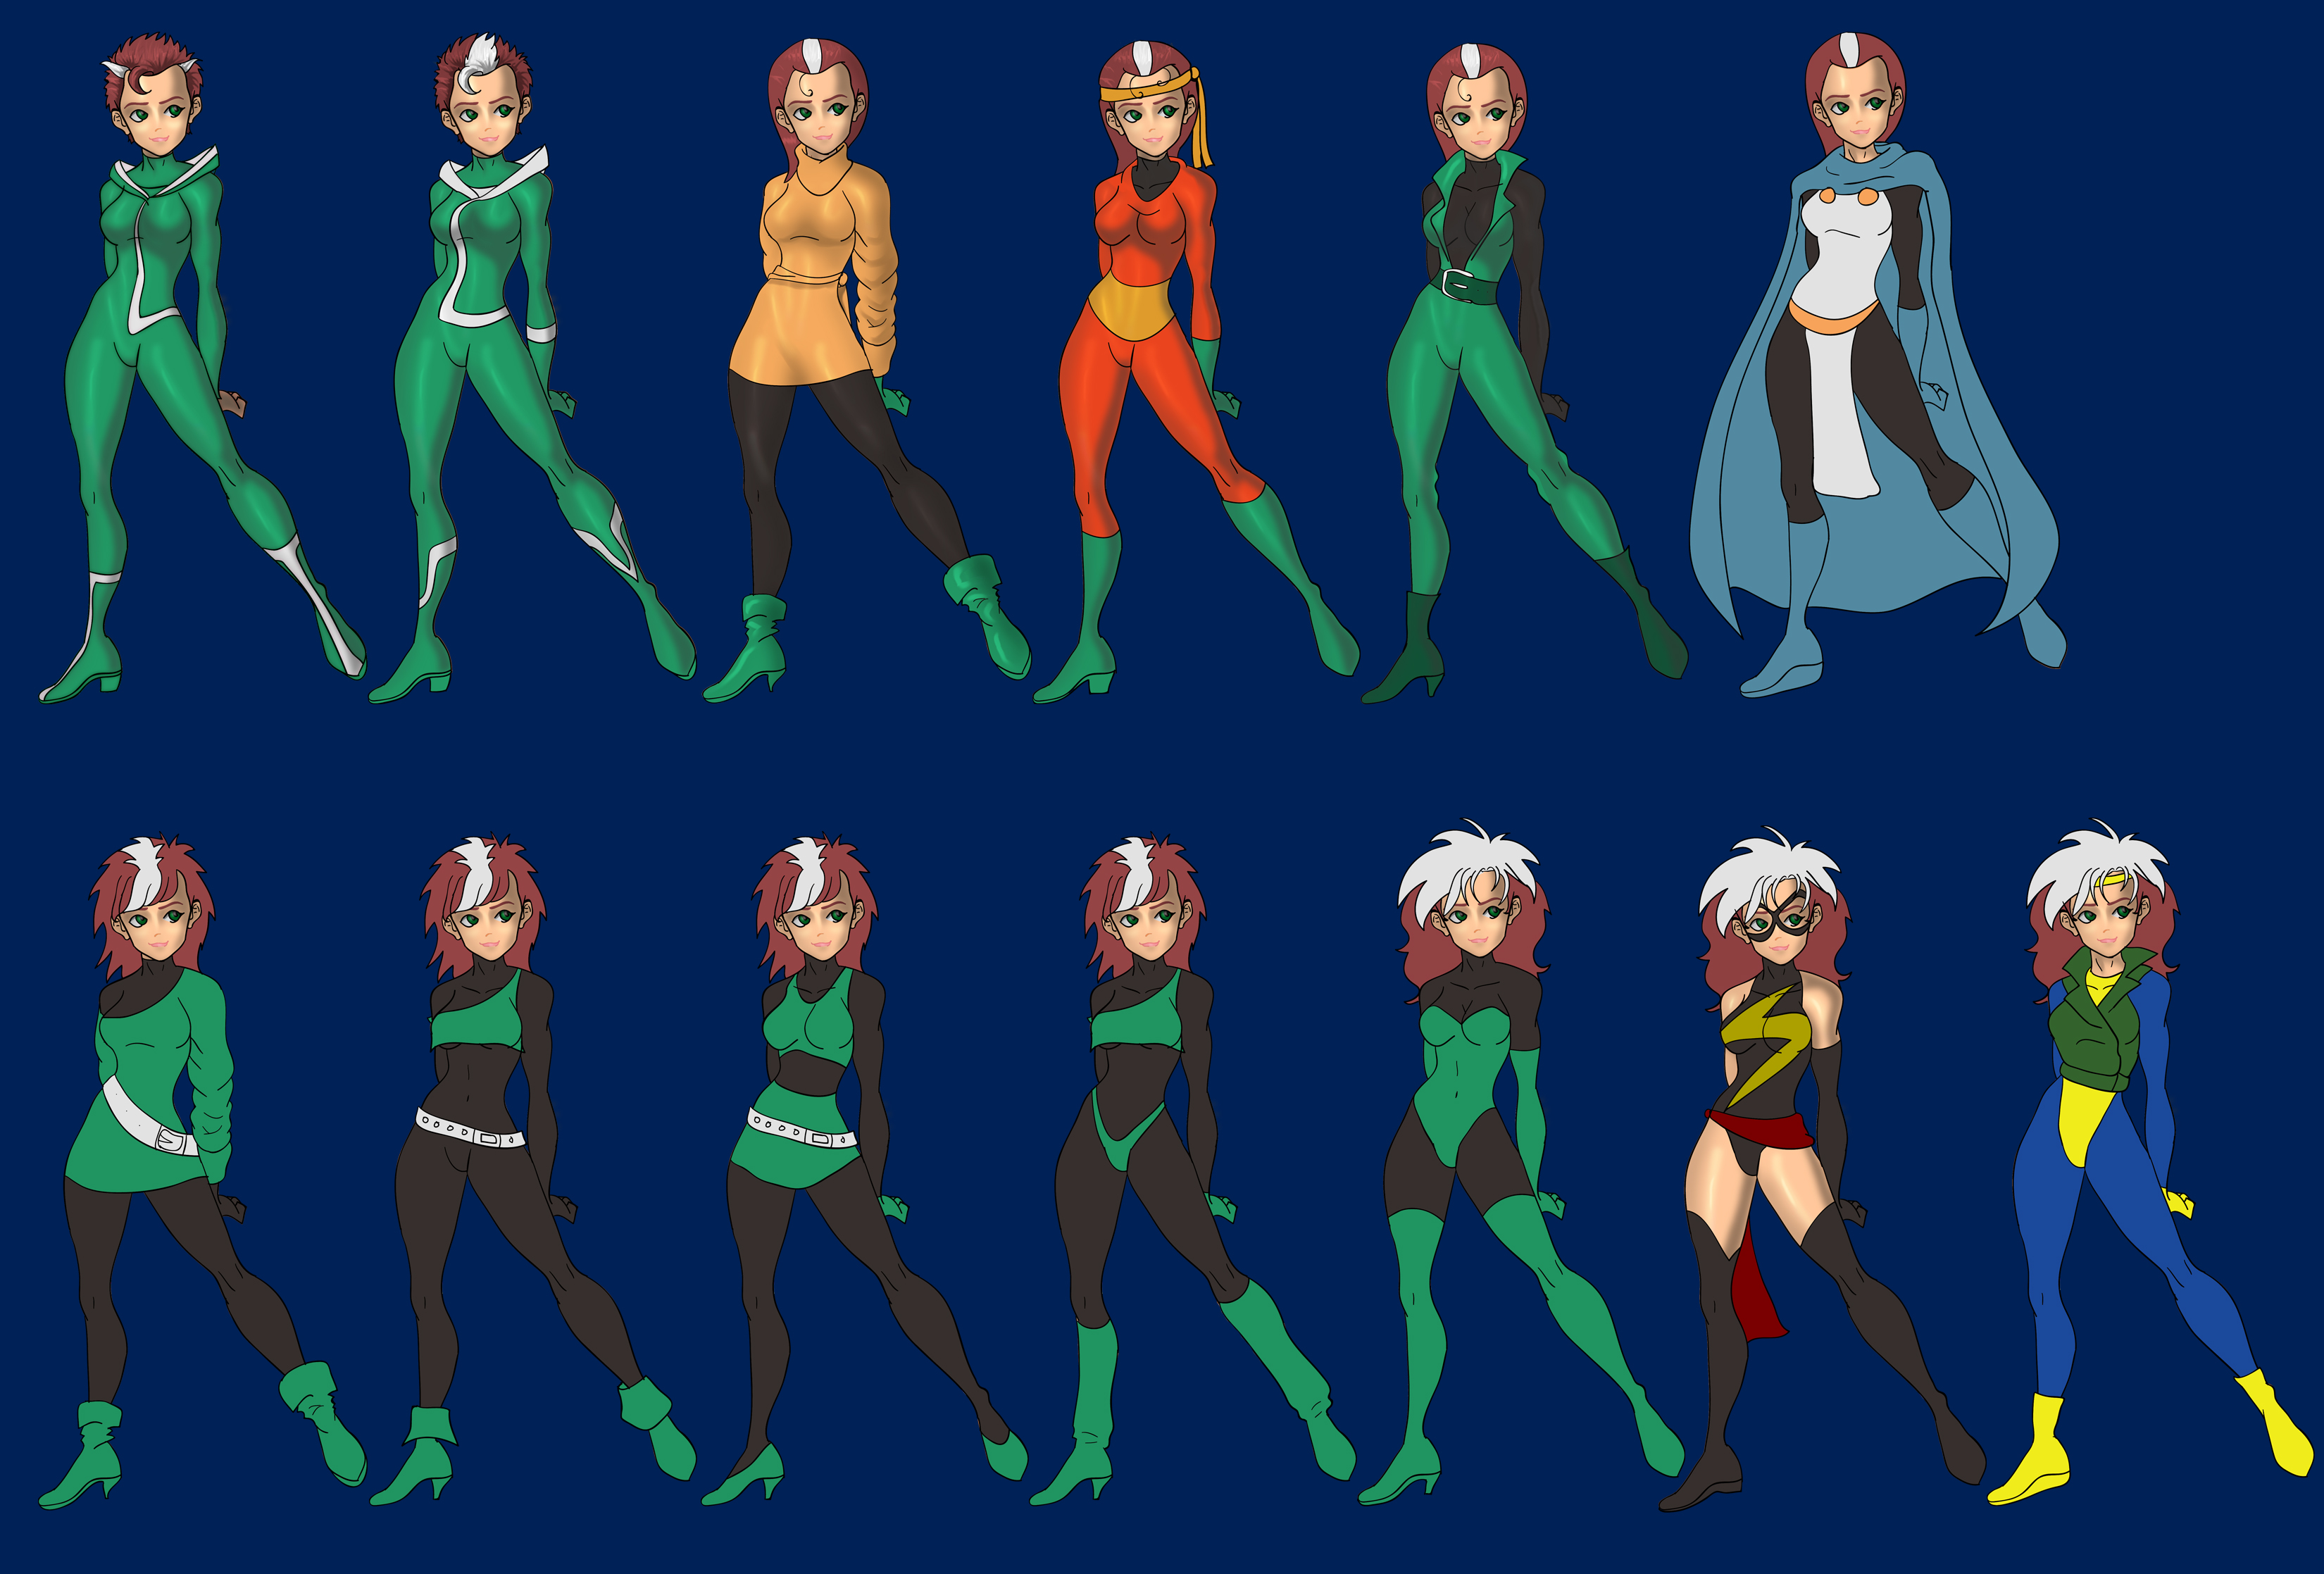 Rogue costume progress by skyboy16 Rogue costume progress by skyboy16  sc 1 st  DeviantArt & Rogue costume progress by skyboy16 on DeviantArt